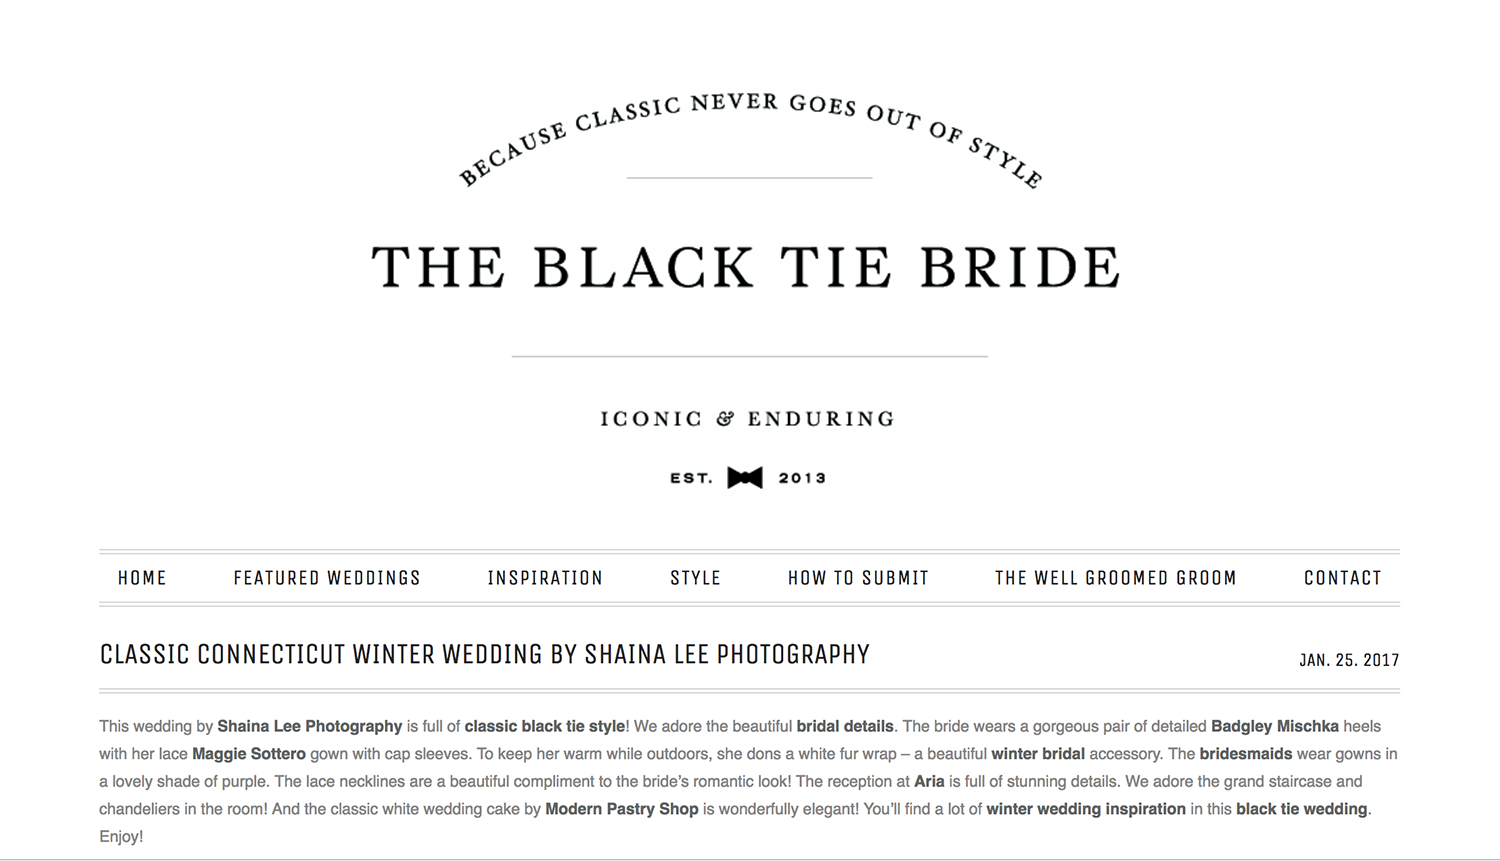 Classic CT Winter Wedding | The Black Tie Bride | Shaina Lee Photography | CT + NY Luxury Wedding Photographer